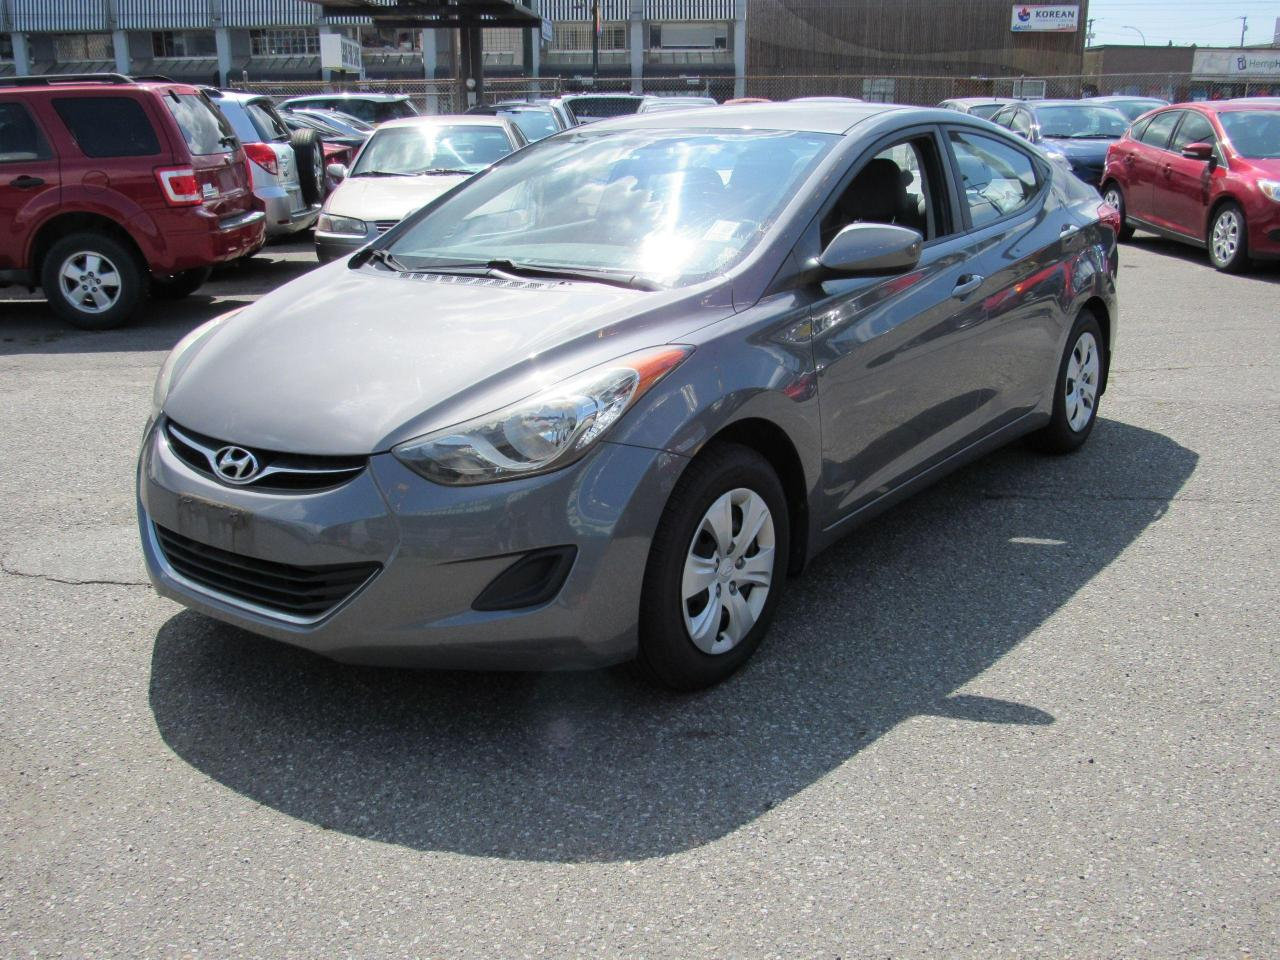 used 2011 hyundai elantra l for sale in vancouver, british columbia carpages.ca